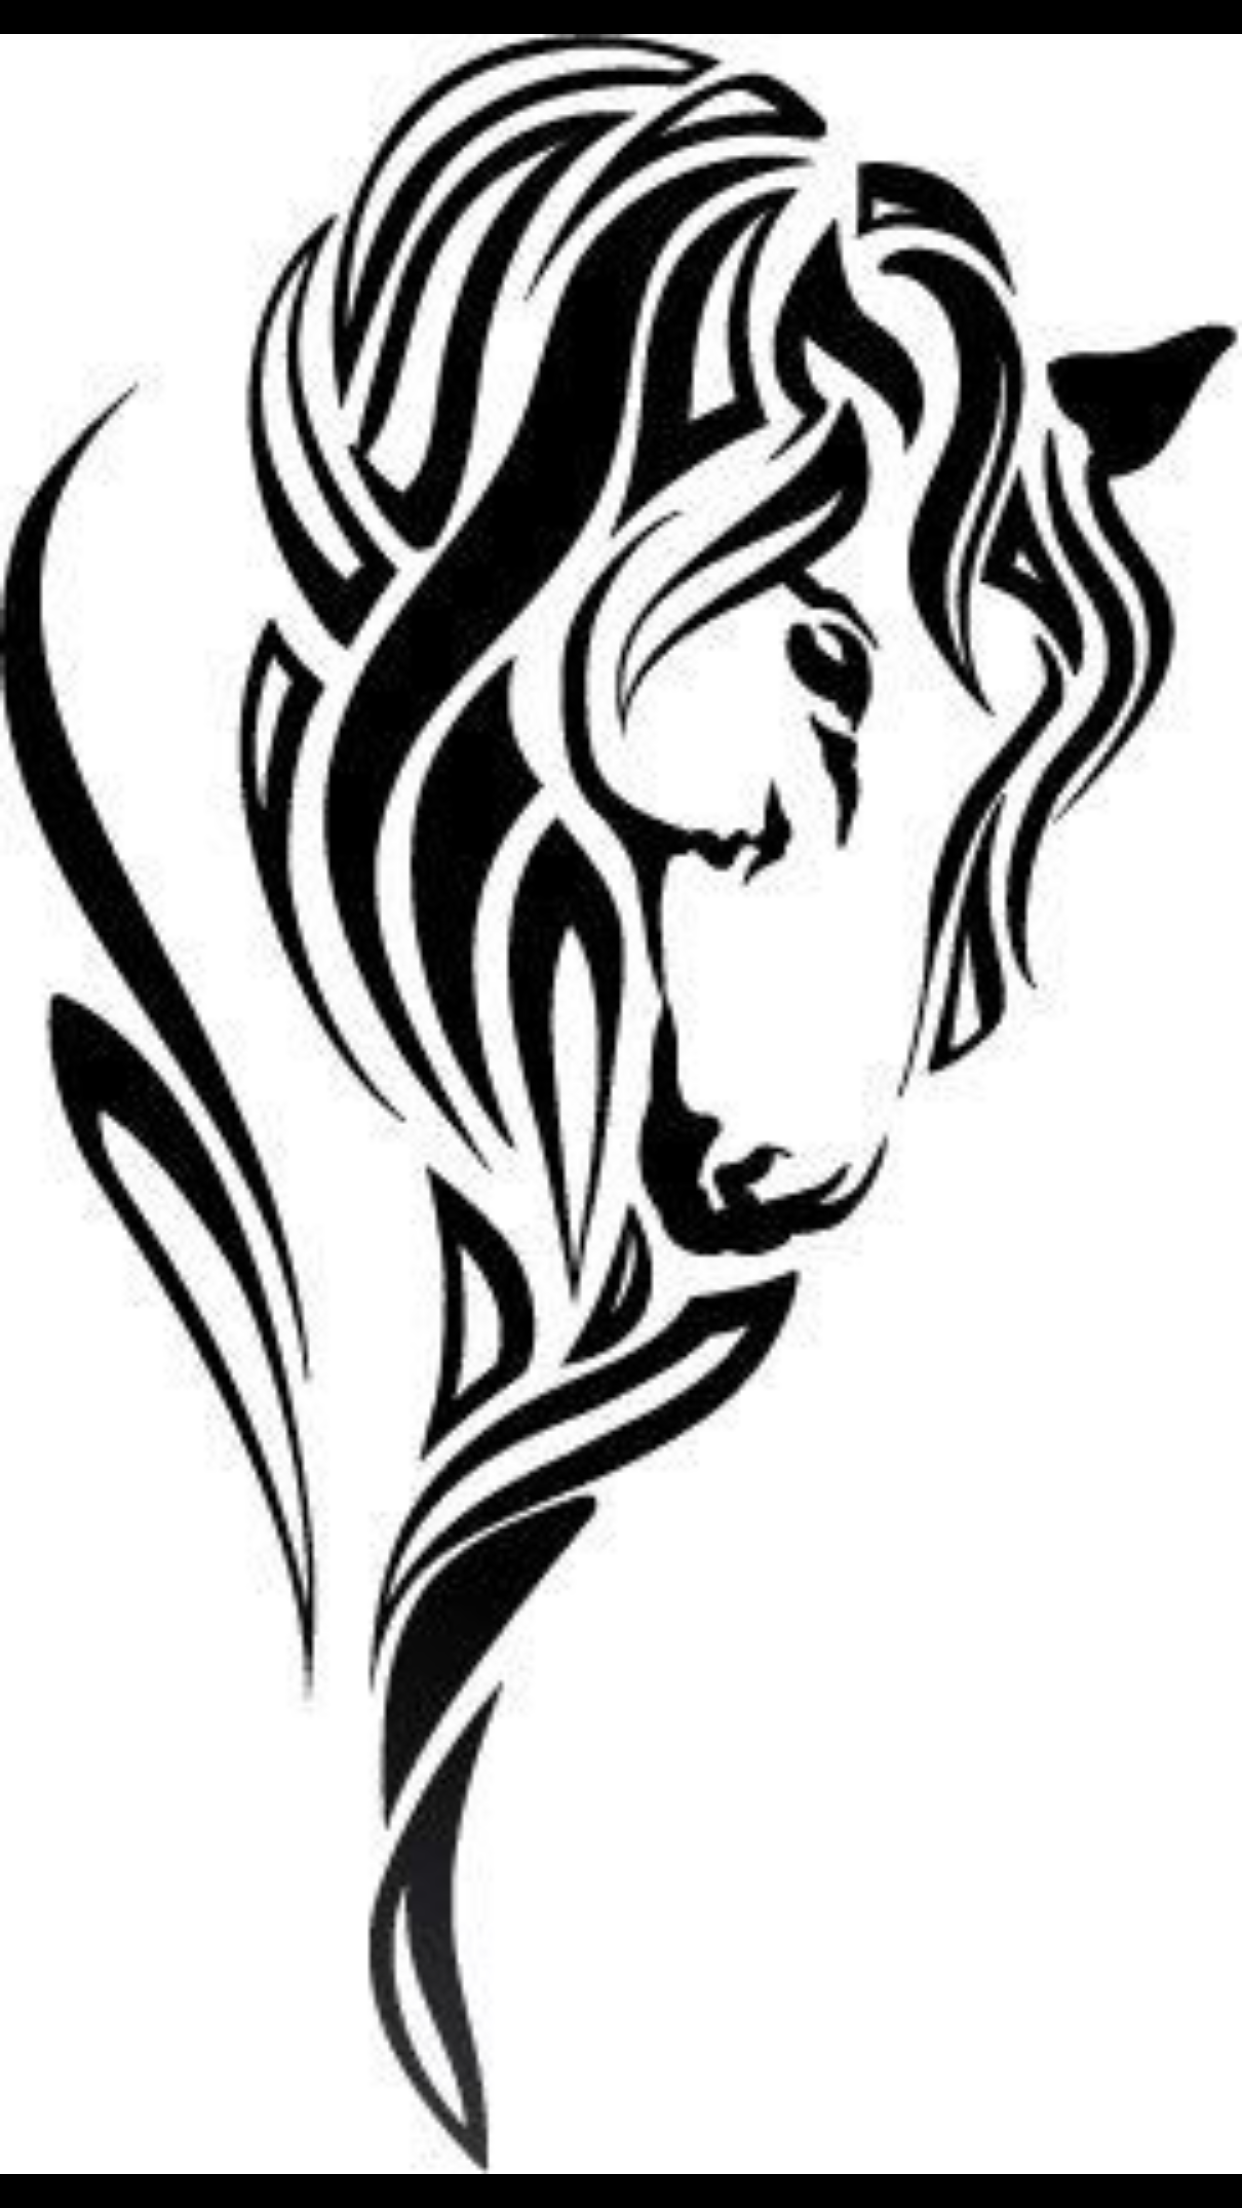 horse tattoo tribal style horse tattoos pinterest tribal style horse and tattoo. Black Bedroom Furniture Sets. Home Design Ideas